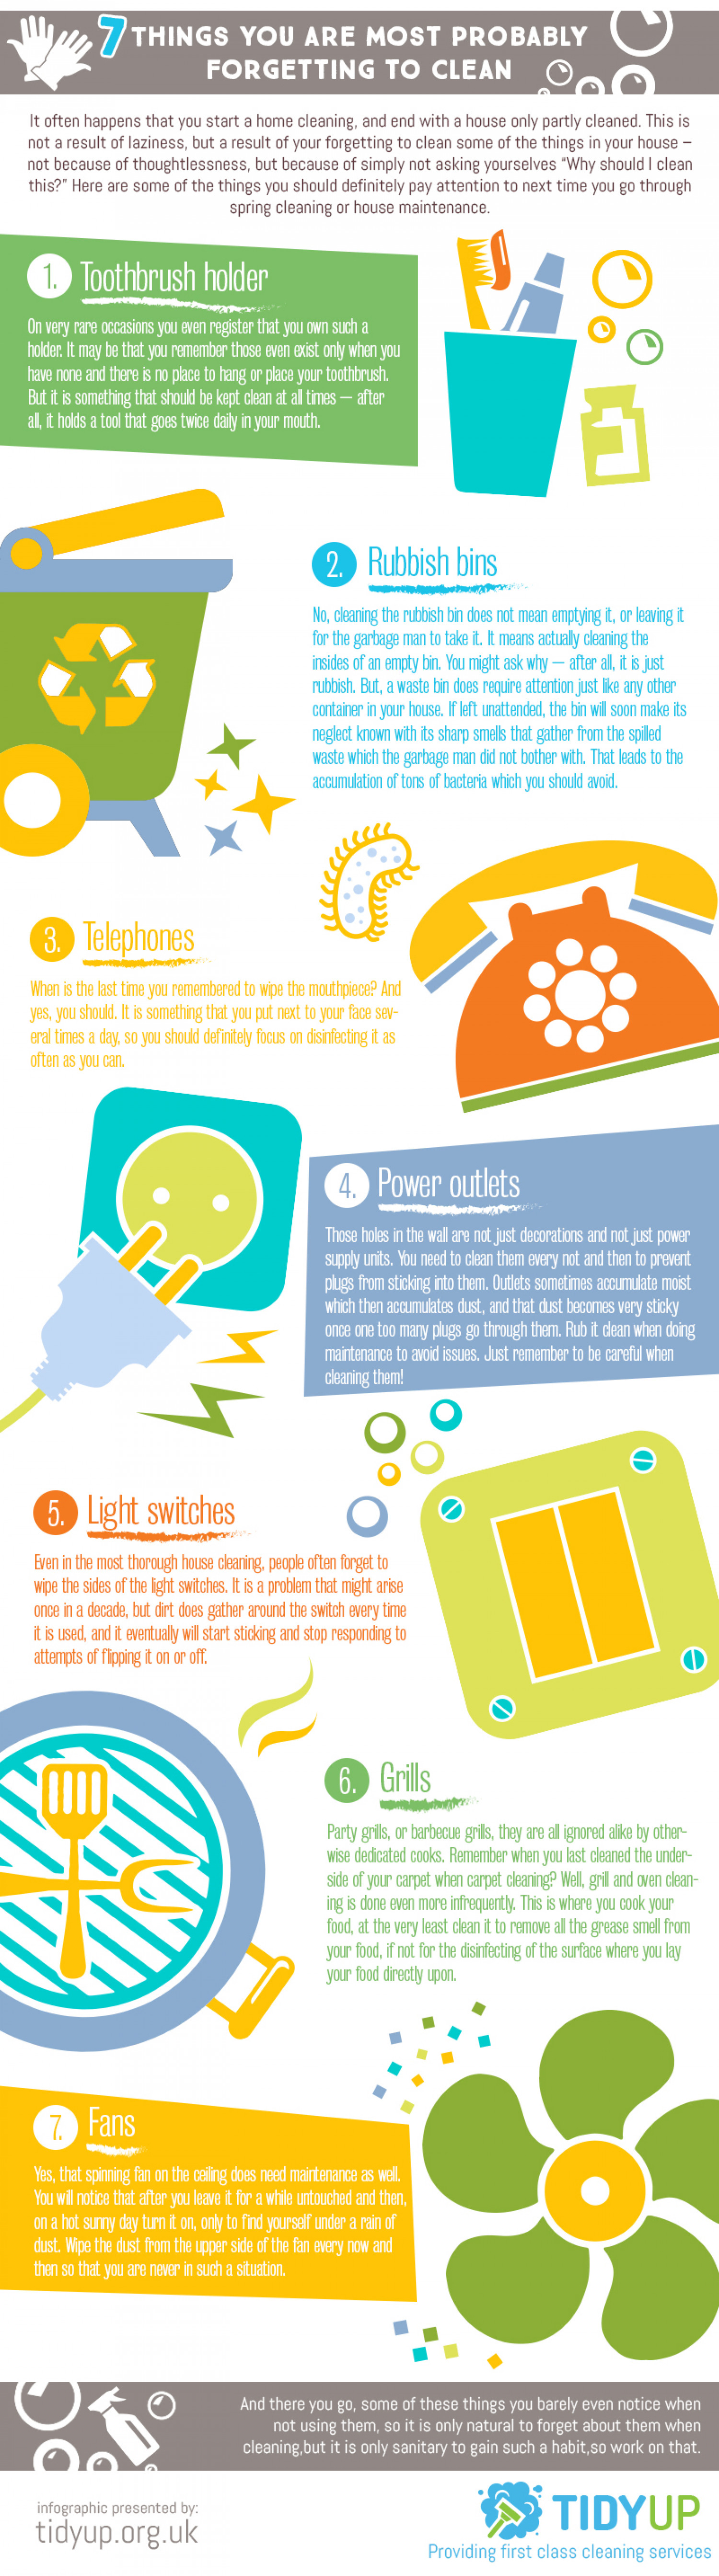 Things You Are Probably Forgetting to Clean Infographic